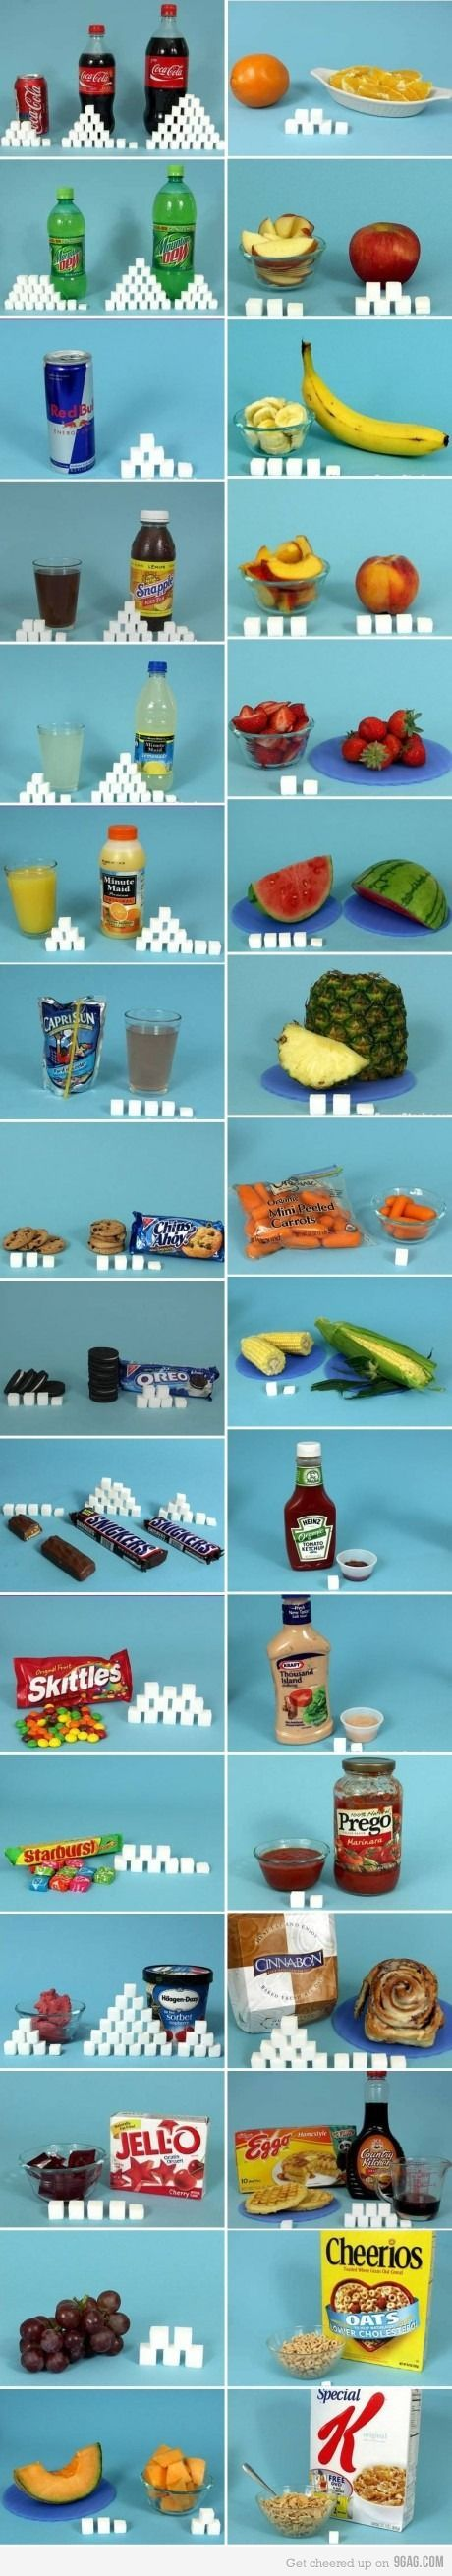 Would you sit & eat 21 sugar cubes - well you just did if you drank a…